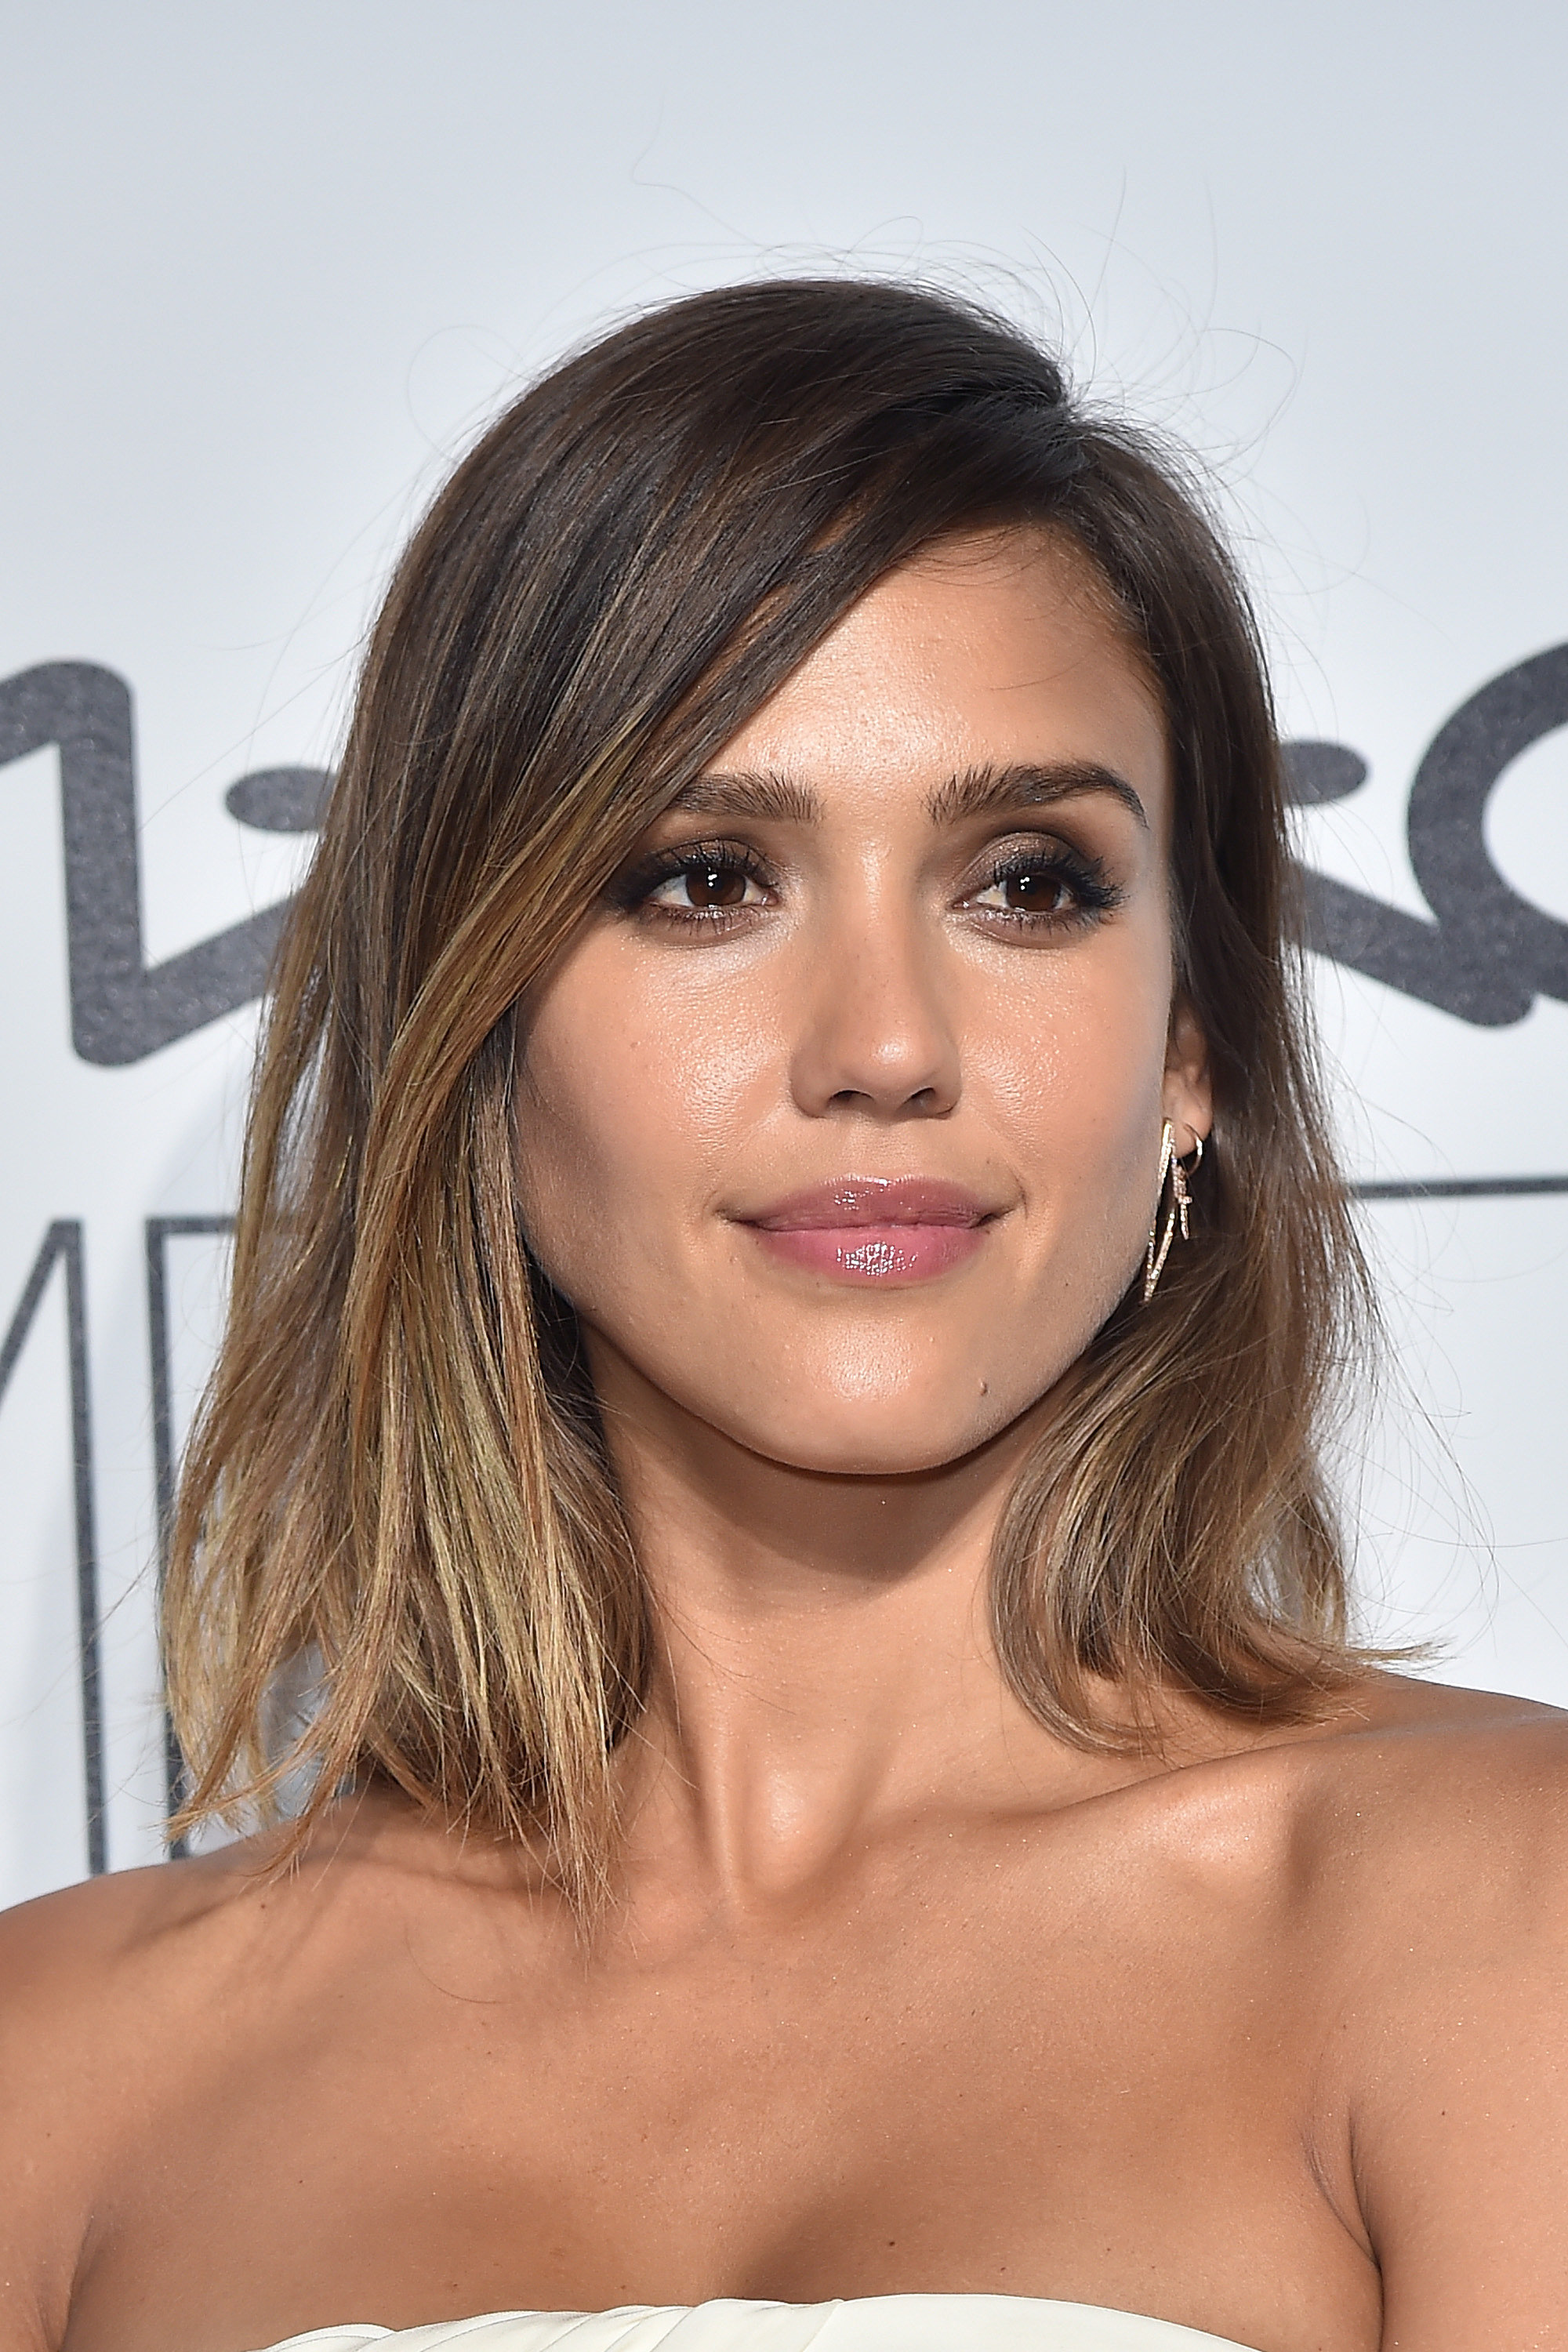 The Grown-Out Lob | Revamp Your Look For Fall With These ...Jessica Alba Lob